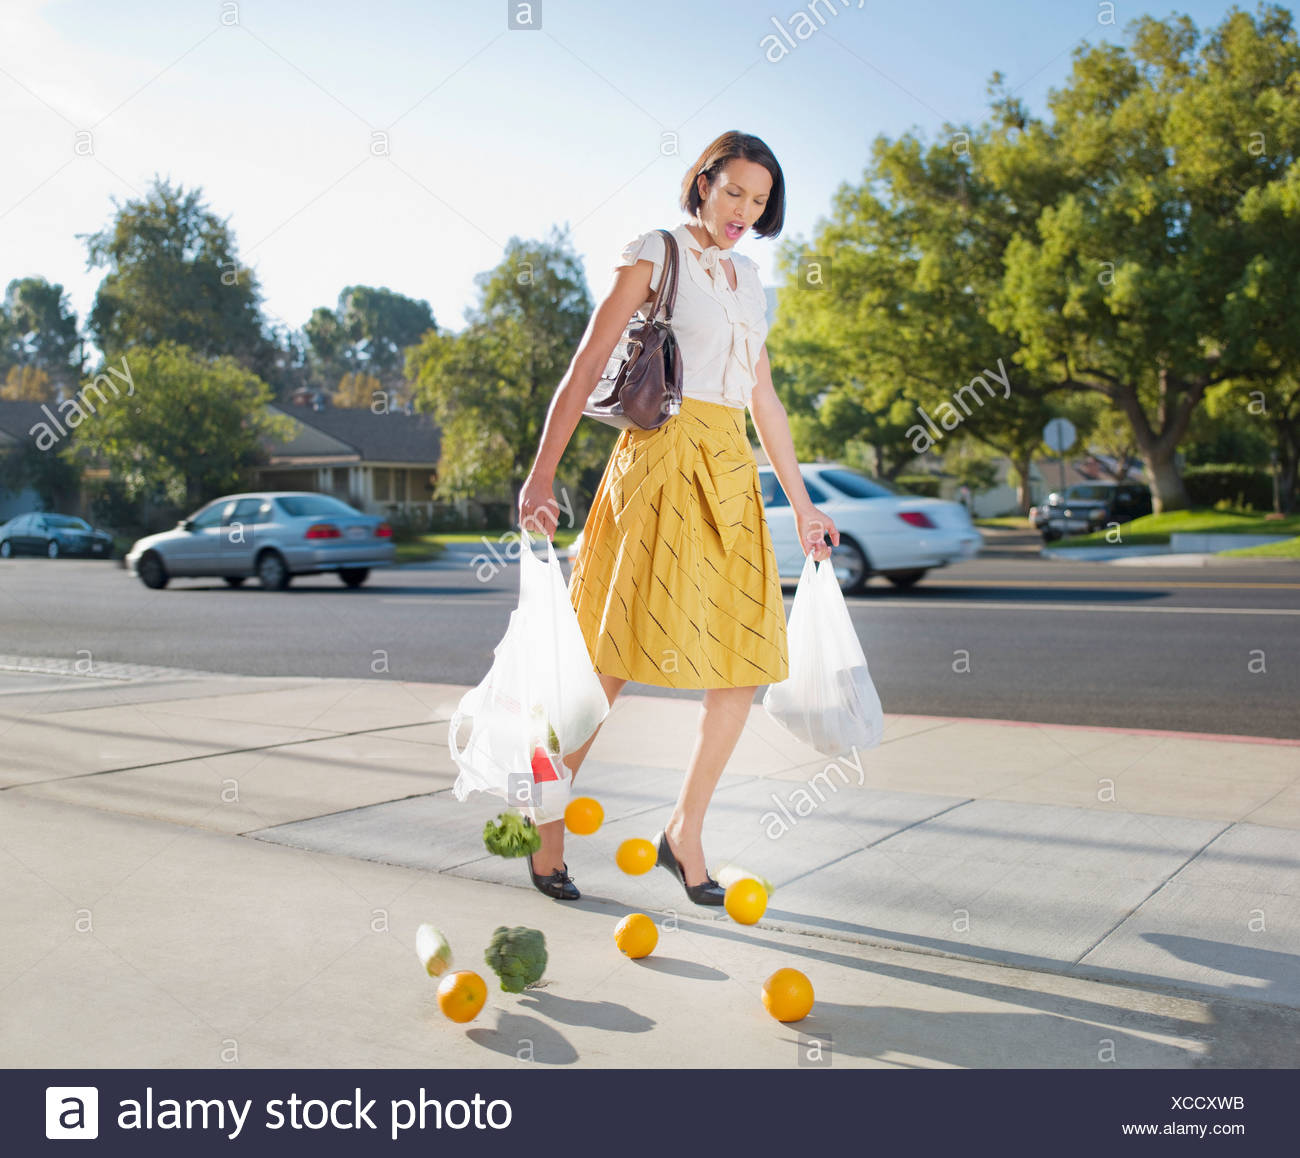 Woman dropping groceries on sidewalk - Stock Image